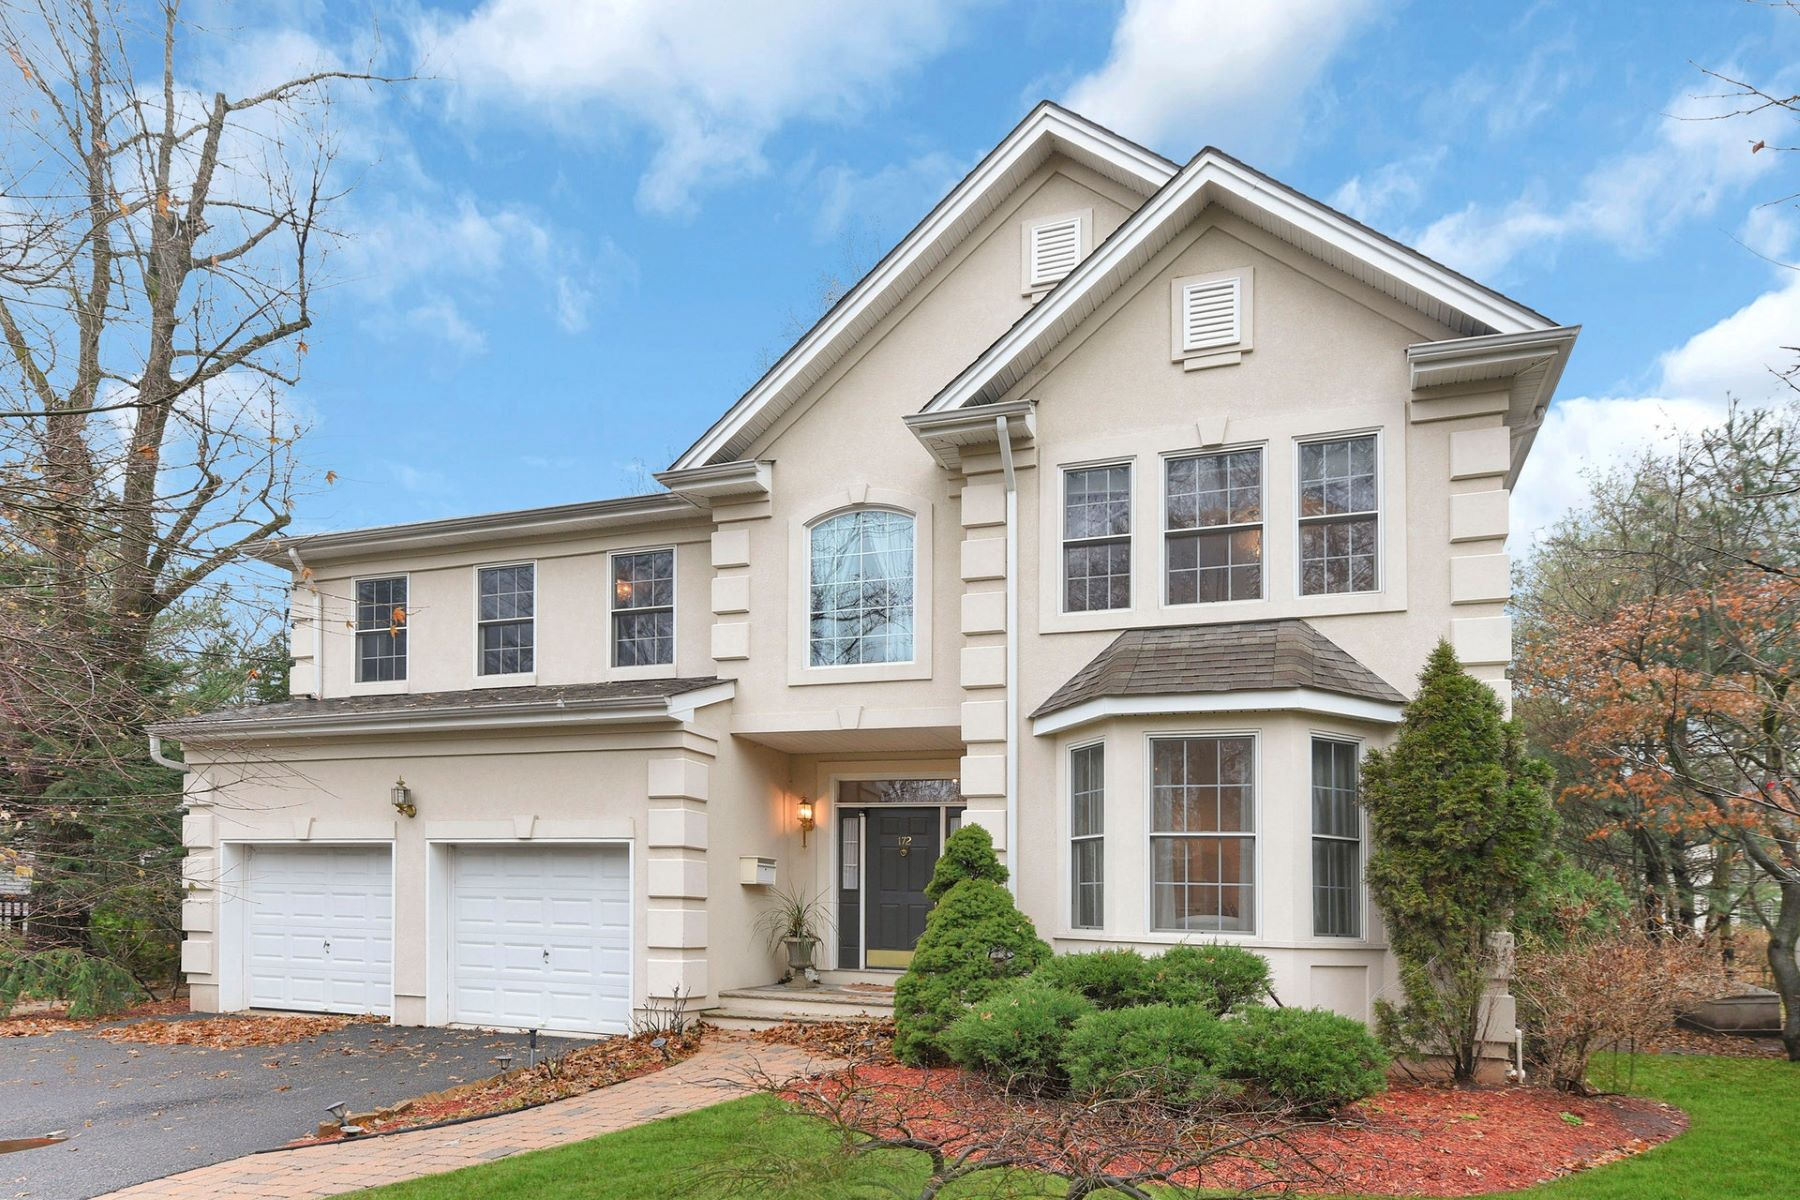 Single Family Homes for Sale at Stunning center colonial with 4 bed rooms and 3 and 1/2 bathroom 172 Crescent St, Closter, New Jersey 07624 United States